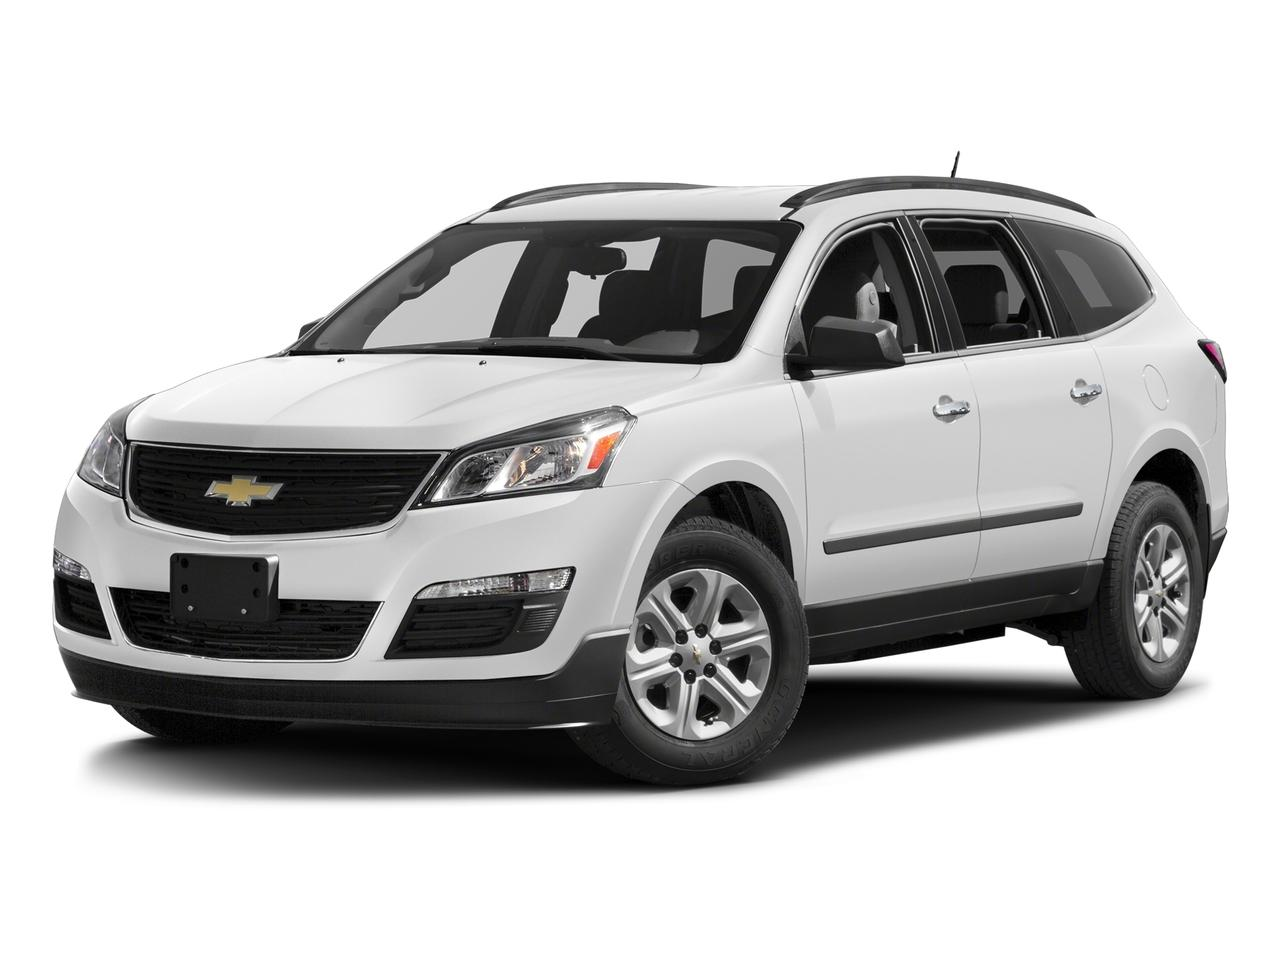 2017 Chevrolet Traverse Vehicle Photo in Baton Rouge, LA 70806